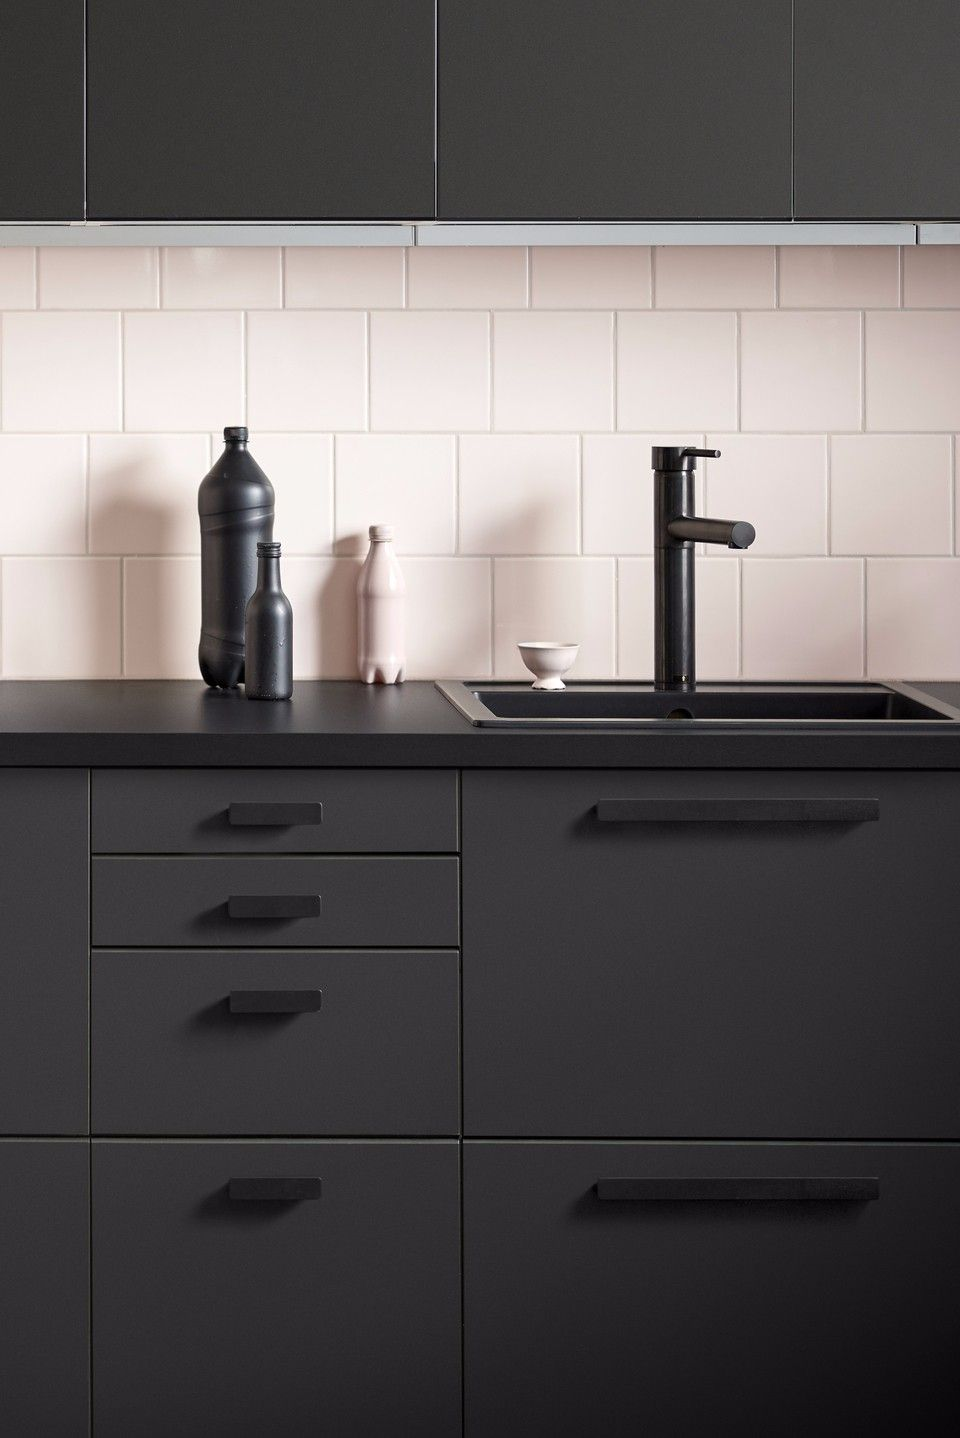 Kitchen cabinets materials - Ikea Just Released The Sleekest Kitchen Cabinets All Made From Recycled Materials